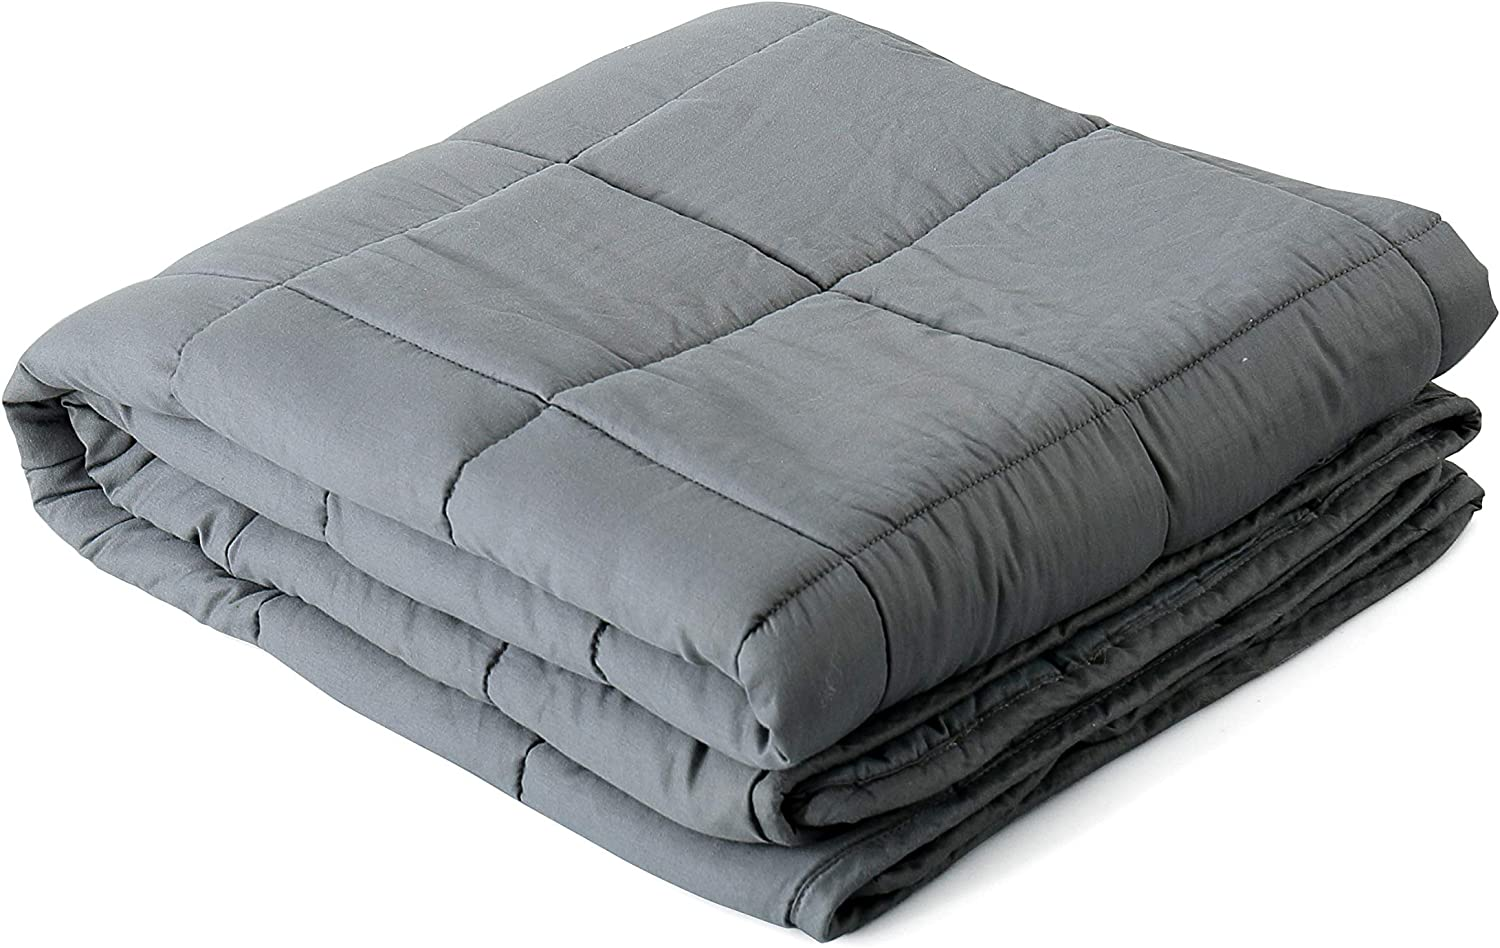 Reafort Cotton Material Shell Weighted Blanket, Heavy Blanket for Adult (Dark Grey, 60 x80  20Lbs)